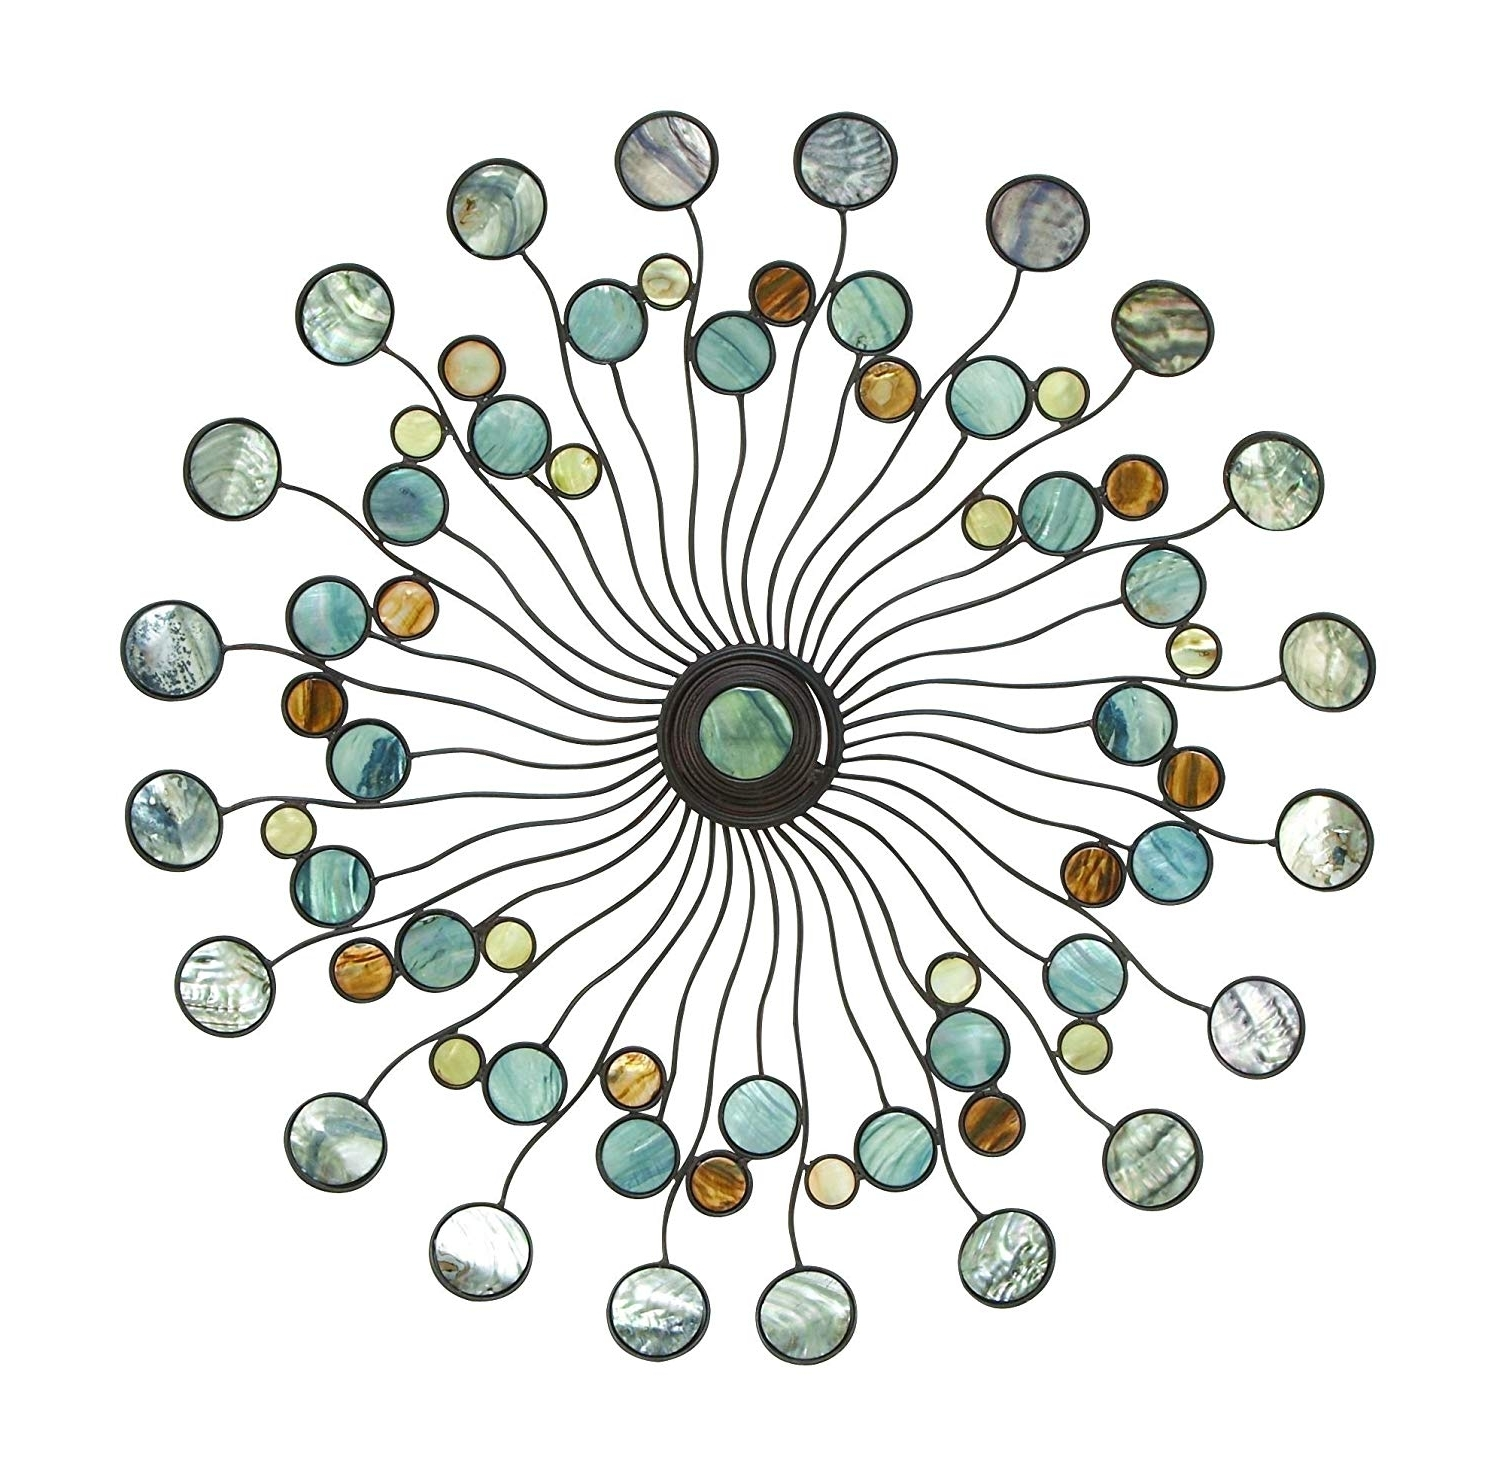 Most Recently Released Amazon: Deco 79 13533 Metal Wall Decor: Home & Kitchen Within Circle Wall Art (View 10 of 15)